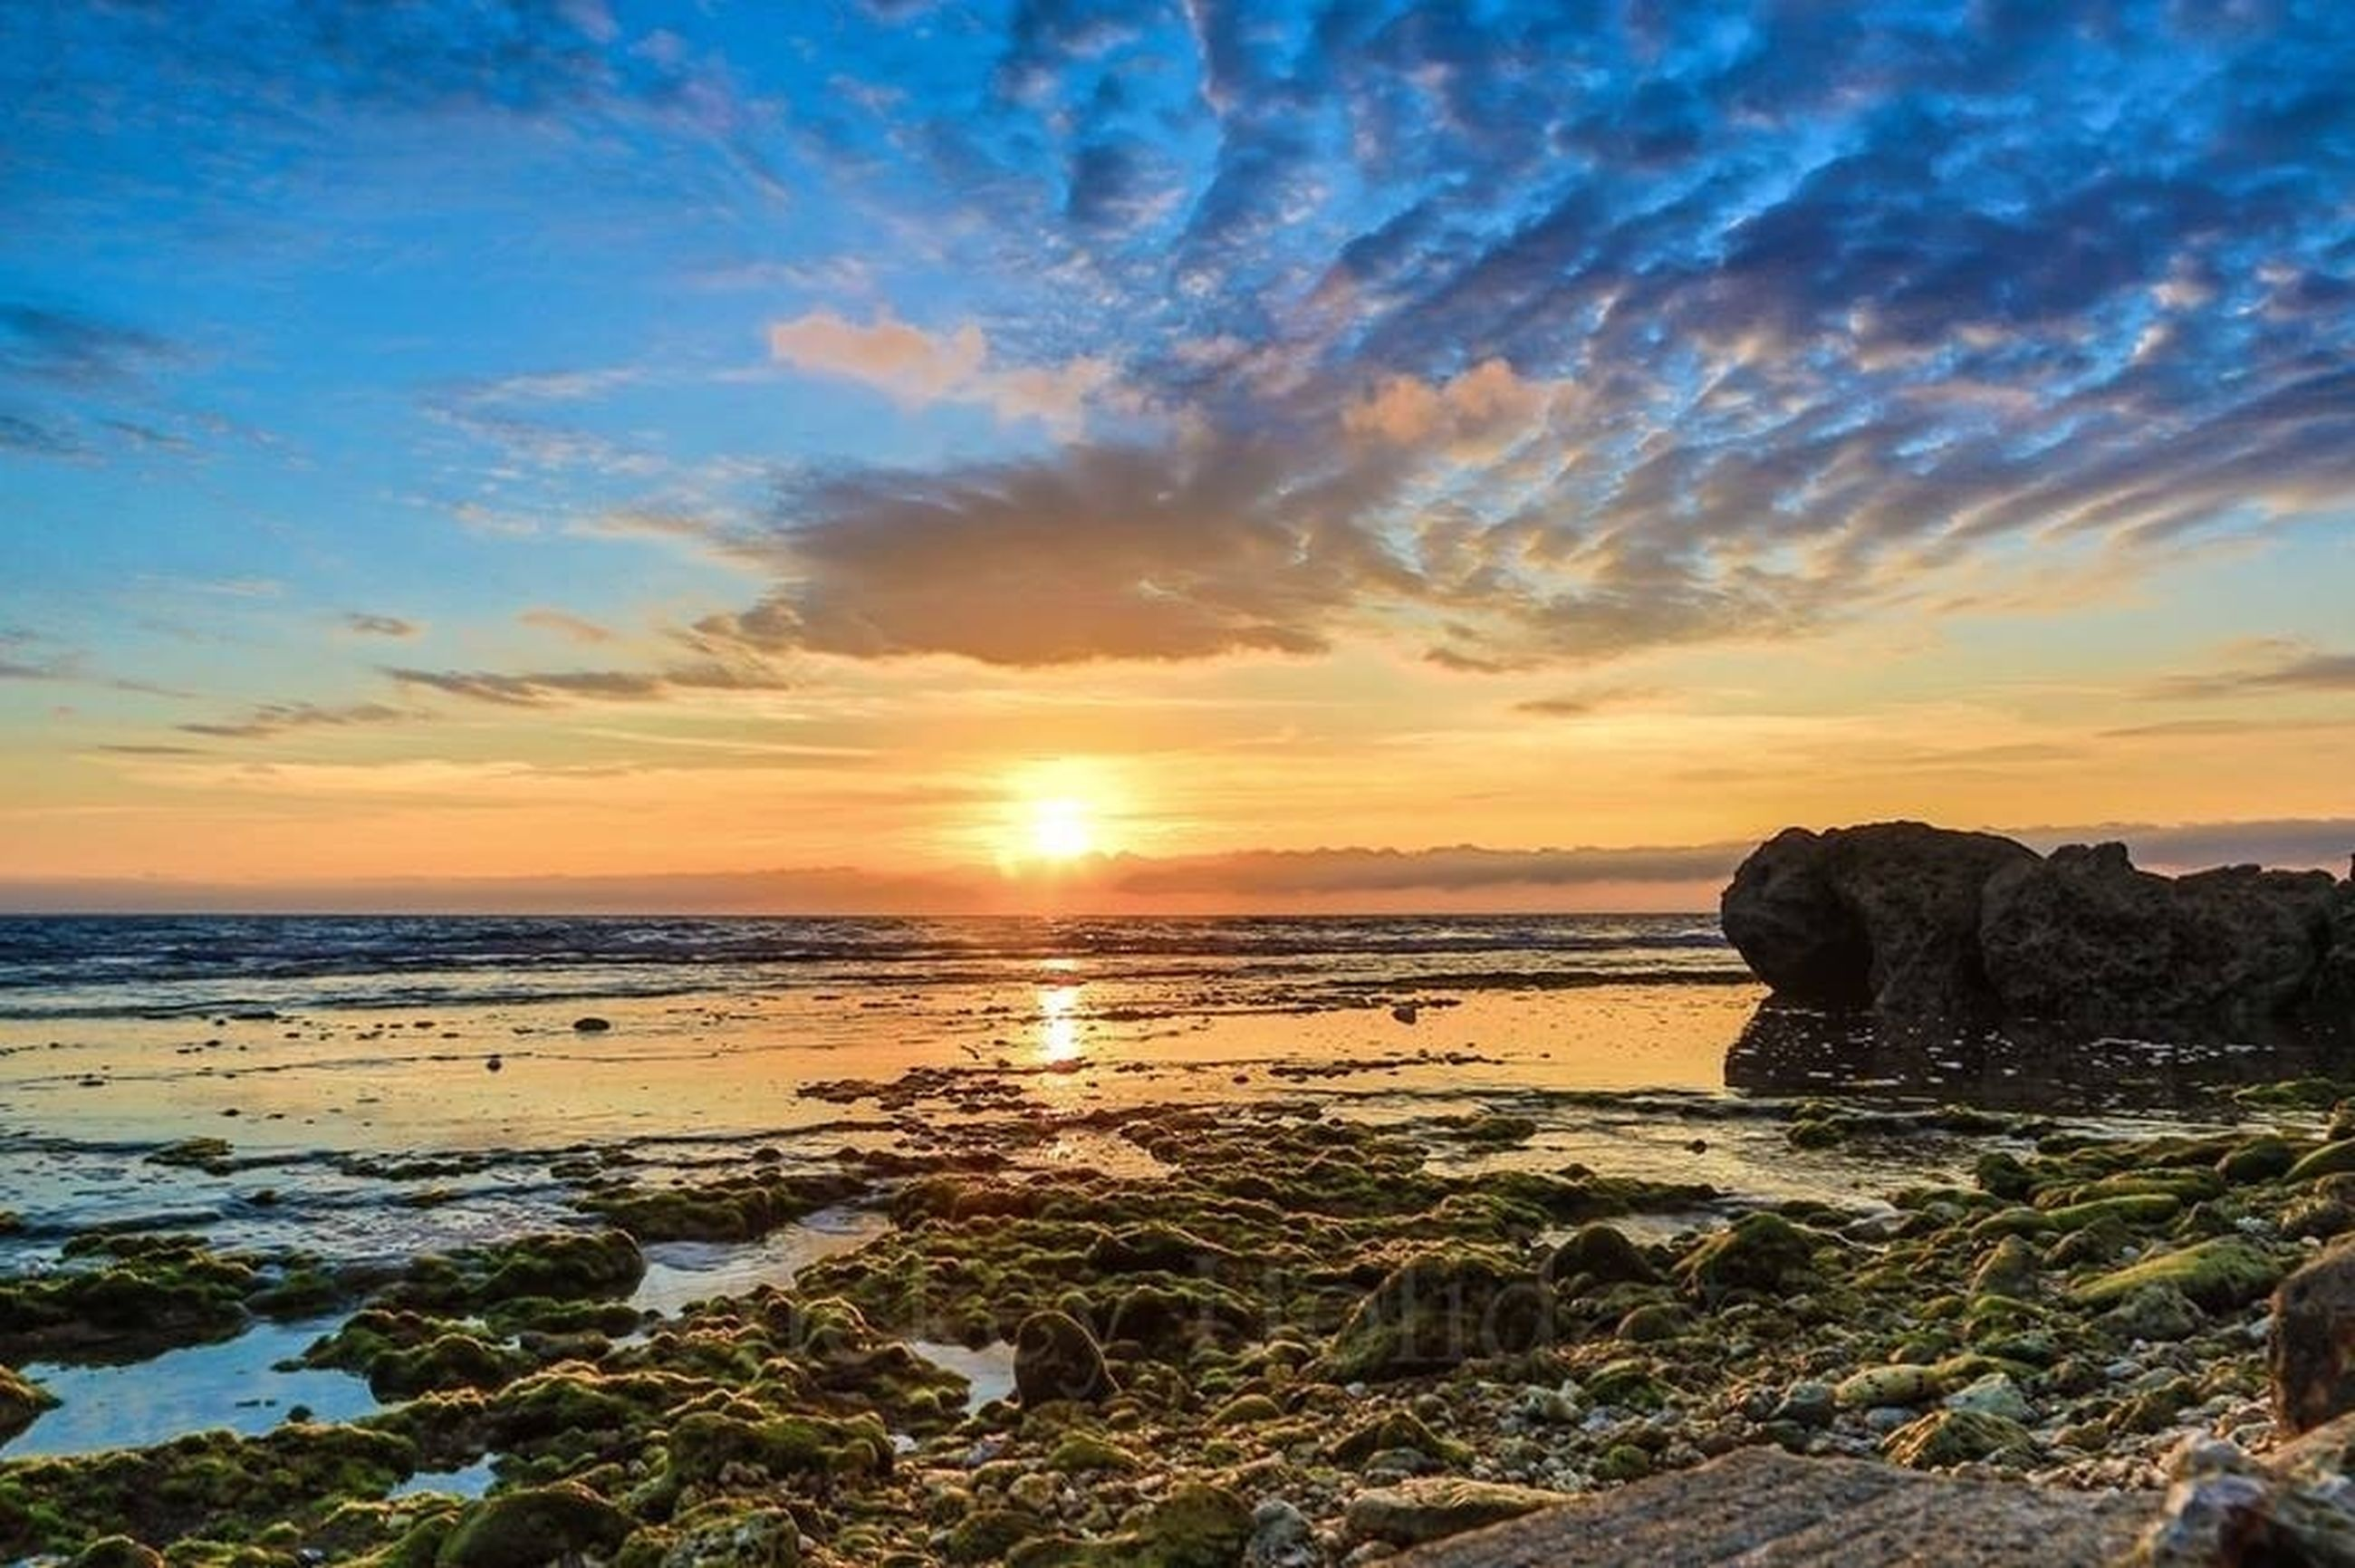 sunset, sea, scenics, water, tranquil scene, sky, beauty in nature, tranquility, beach, horizon over water, shore, sun, nature, cloud - sky, rock - object, idyllic, orange color, cloud, sunlight, non-urban scene